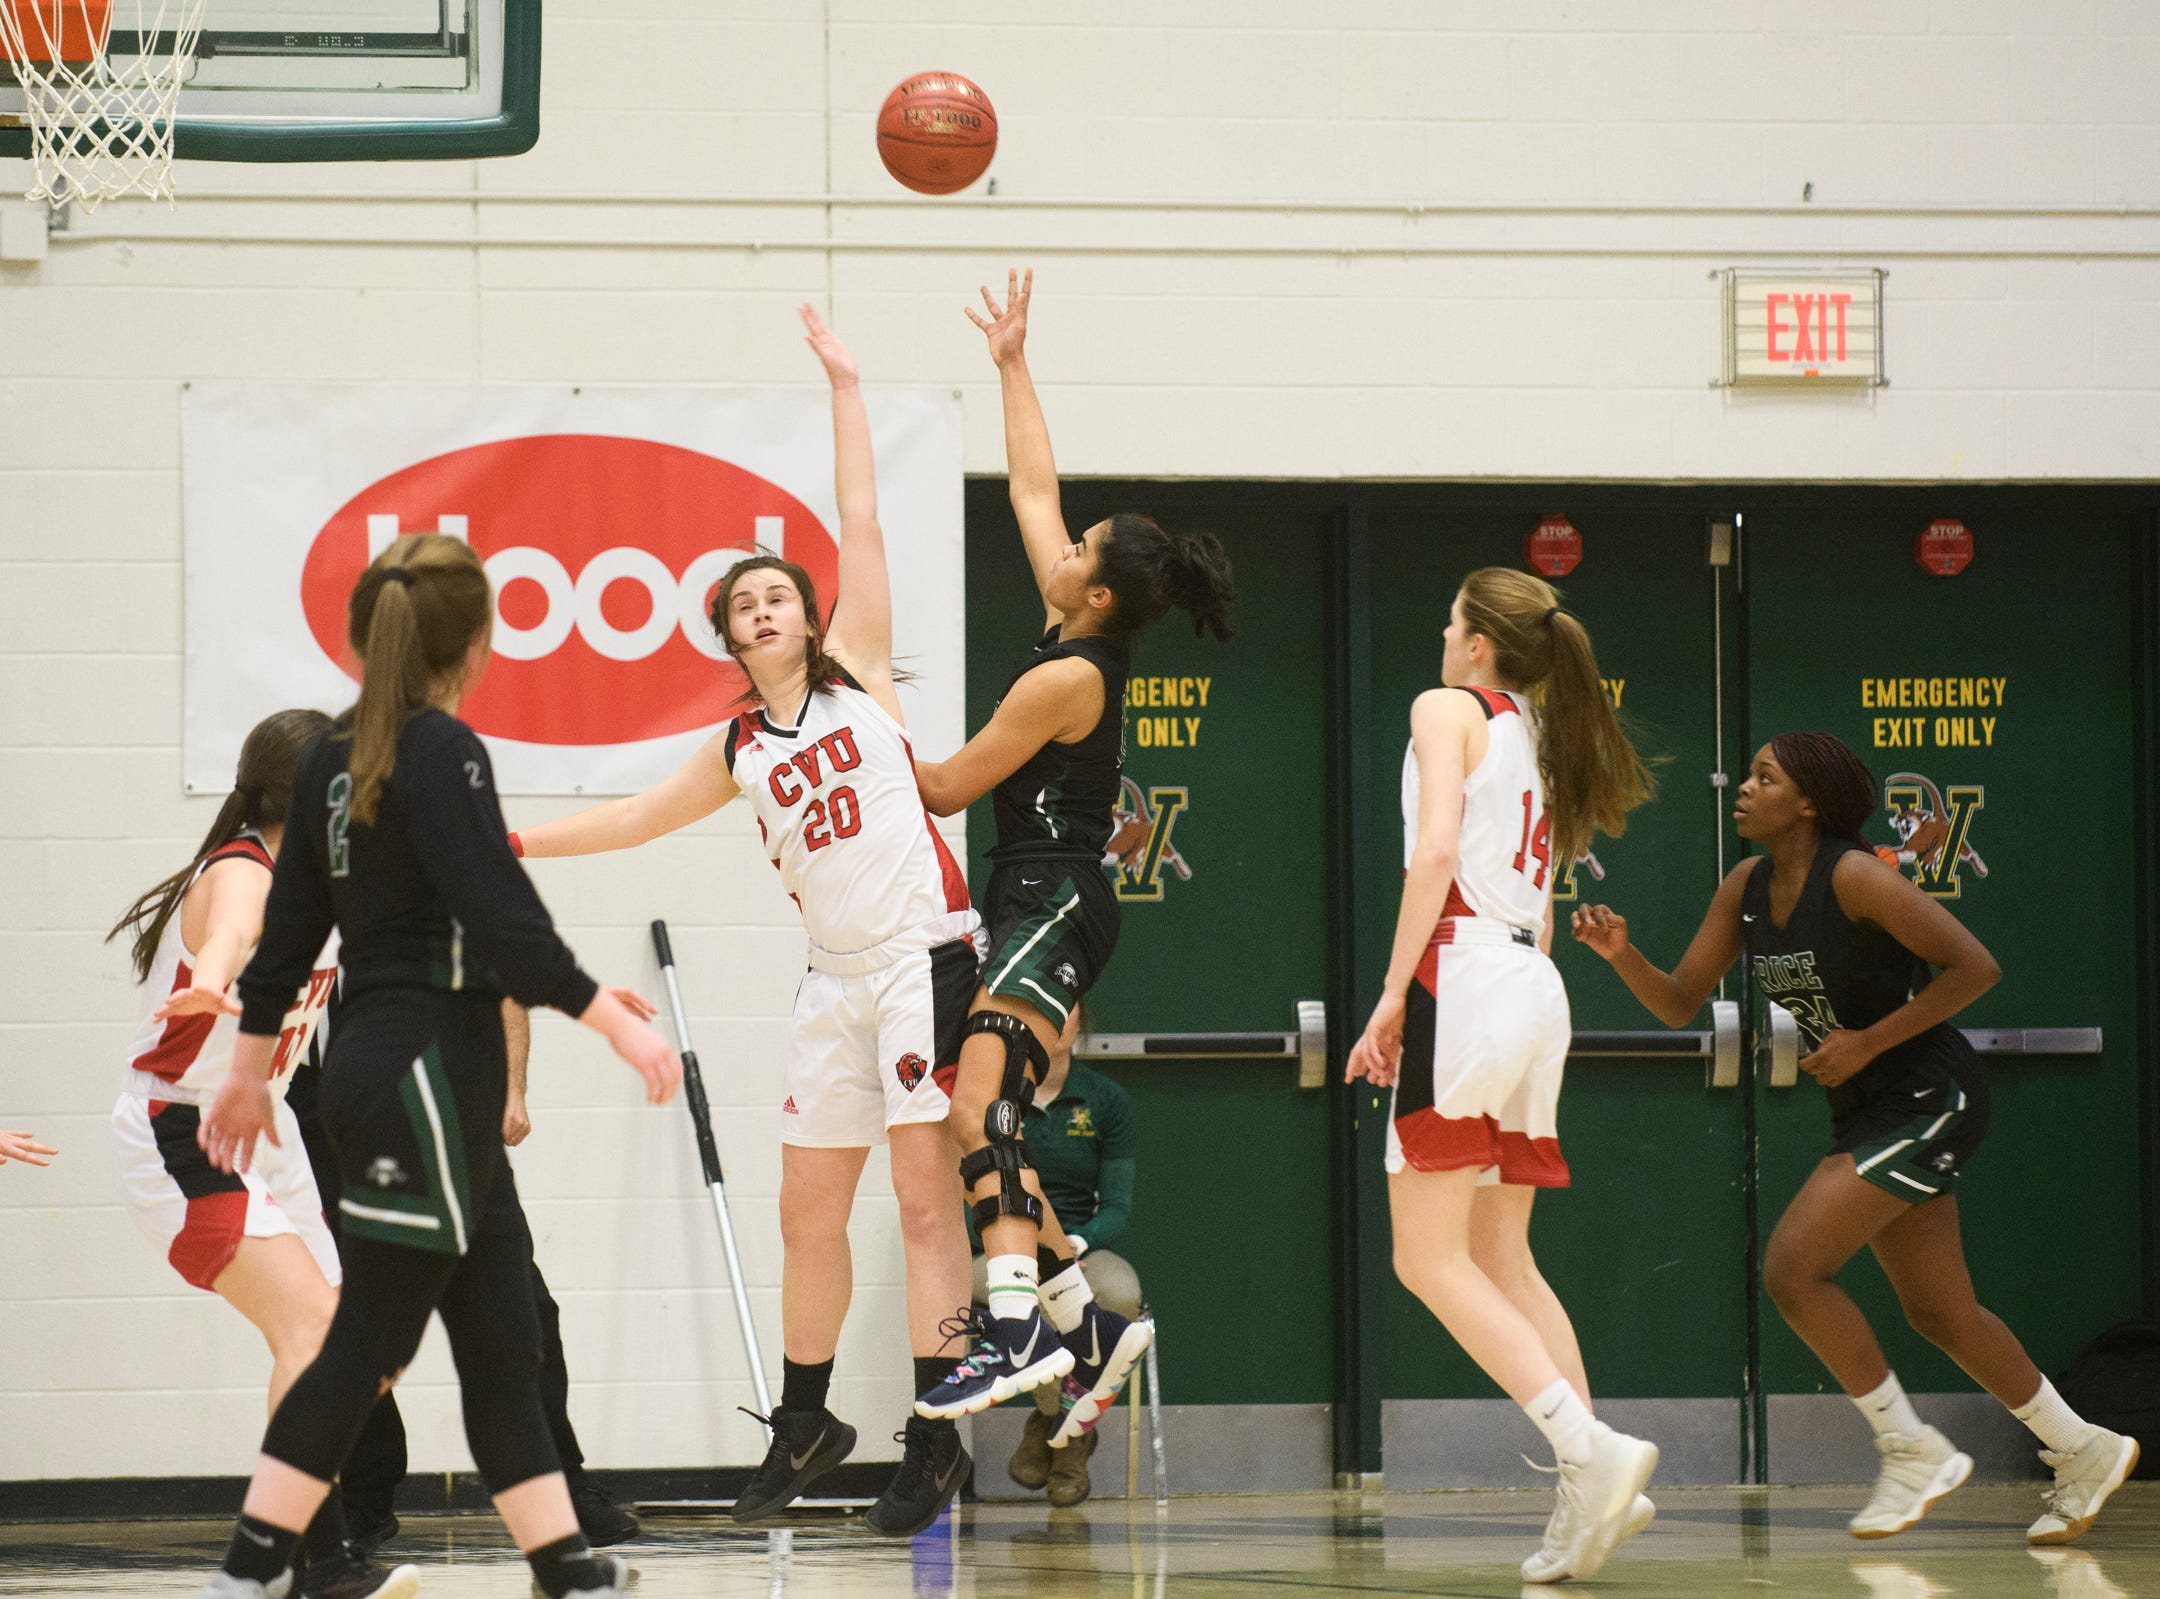 Rice's Haley Walker (10) leaps over CVU's Ella Woodruff (20) to take a shot during the girls semifinal basketball game between the Rice Green Knights and the Champlain Valley Union Redhawks at Patrick Gym on Wednesday nigh March 6, 2019 in Burlington, Vermont.